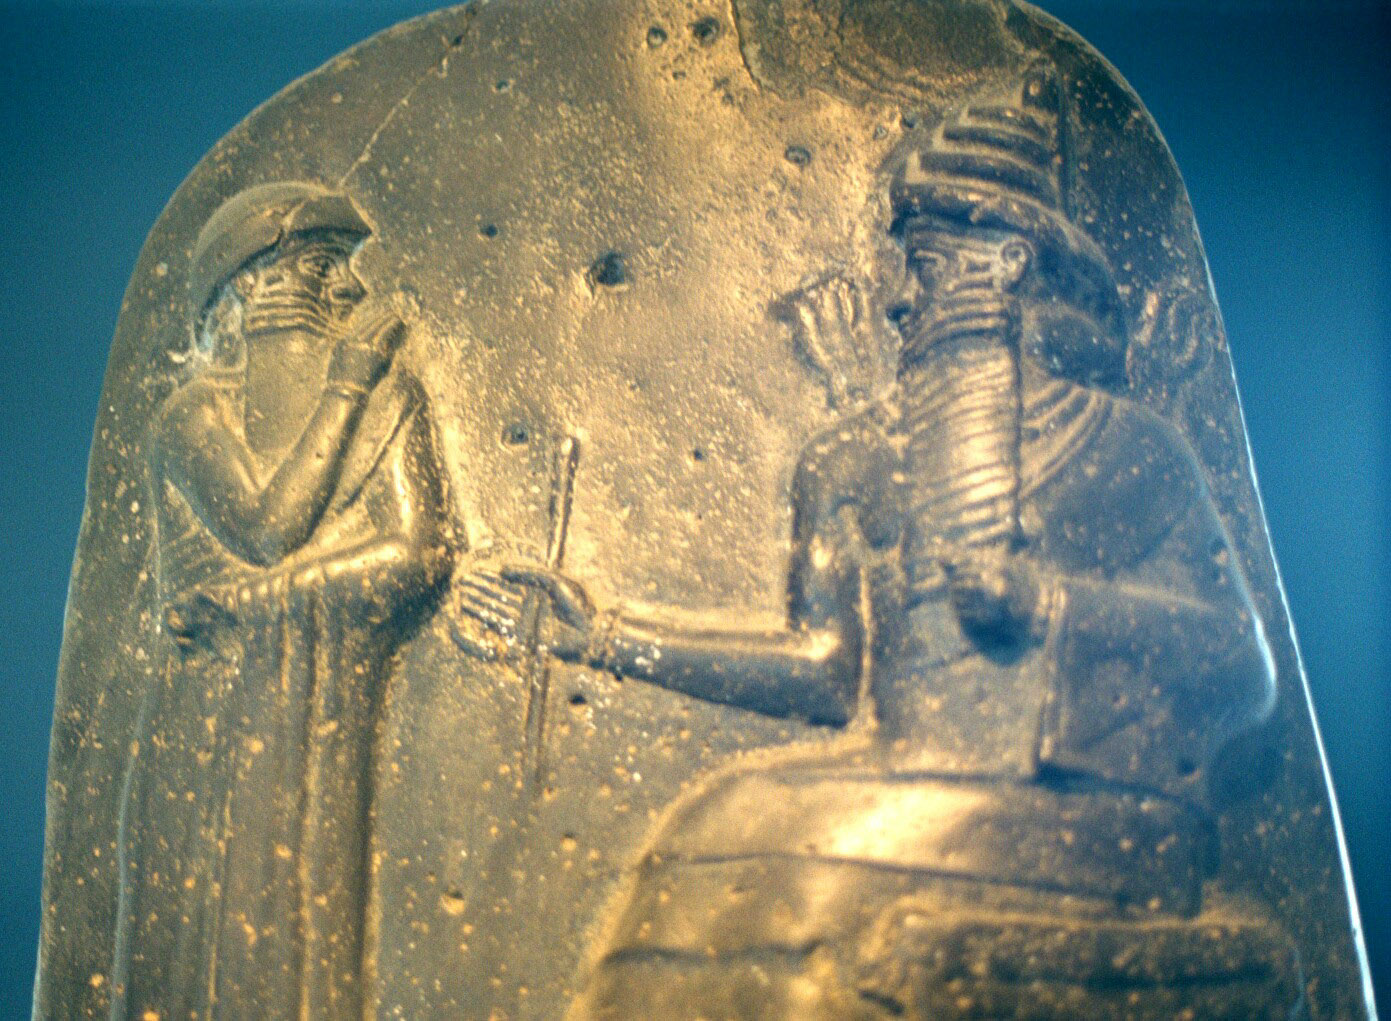 8a - giant alien god Utu & Babylonian giant mixed-breed King Hammurabi, the law codes of Utu were handed down to King Hammurabi for the Babylonian earthlings to adhere to, artefacts of the giant alien gods are shamefully being destroyed by Radical Islam, power-brokers of Islam fearing loss of credibility due to the ancient evidence, that directly contradicts their 7th century A.D. doctrines of Islam